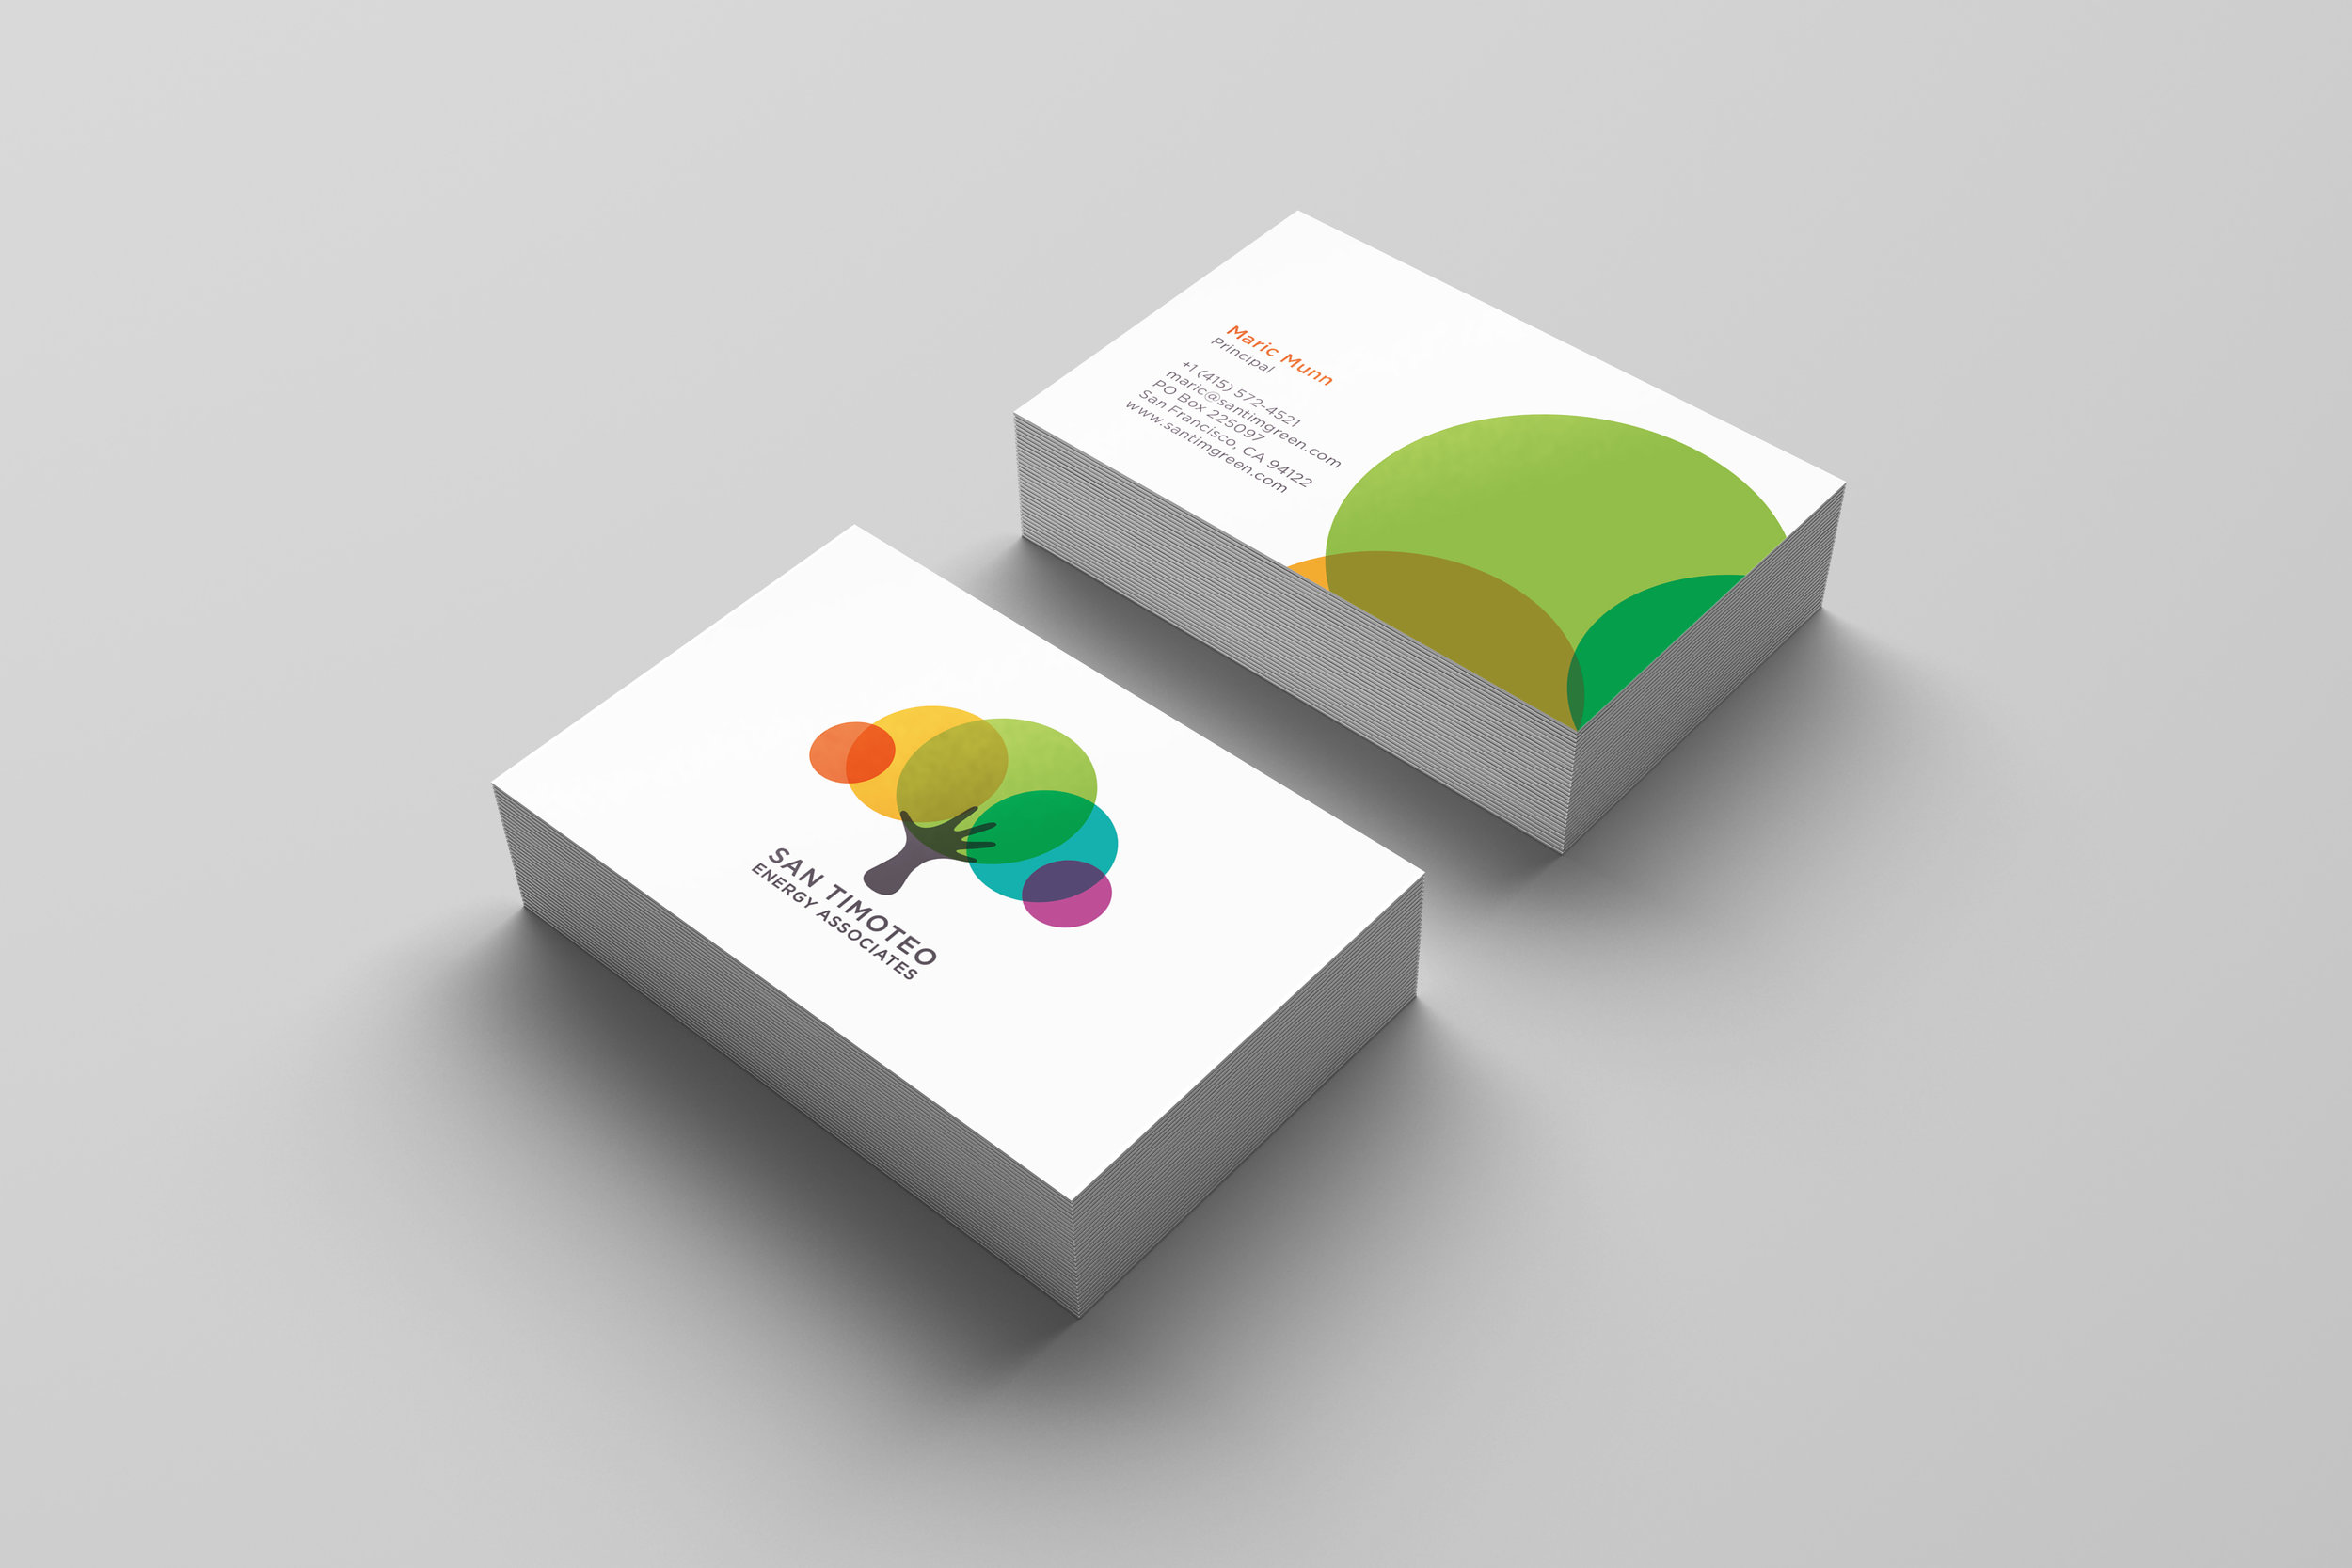 SanT_business-card-mockup_2.jpg